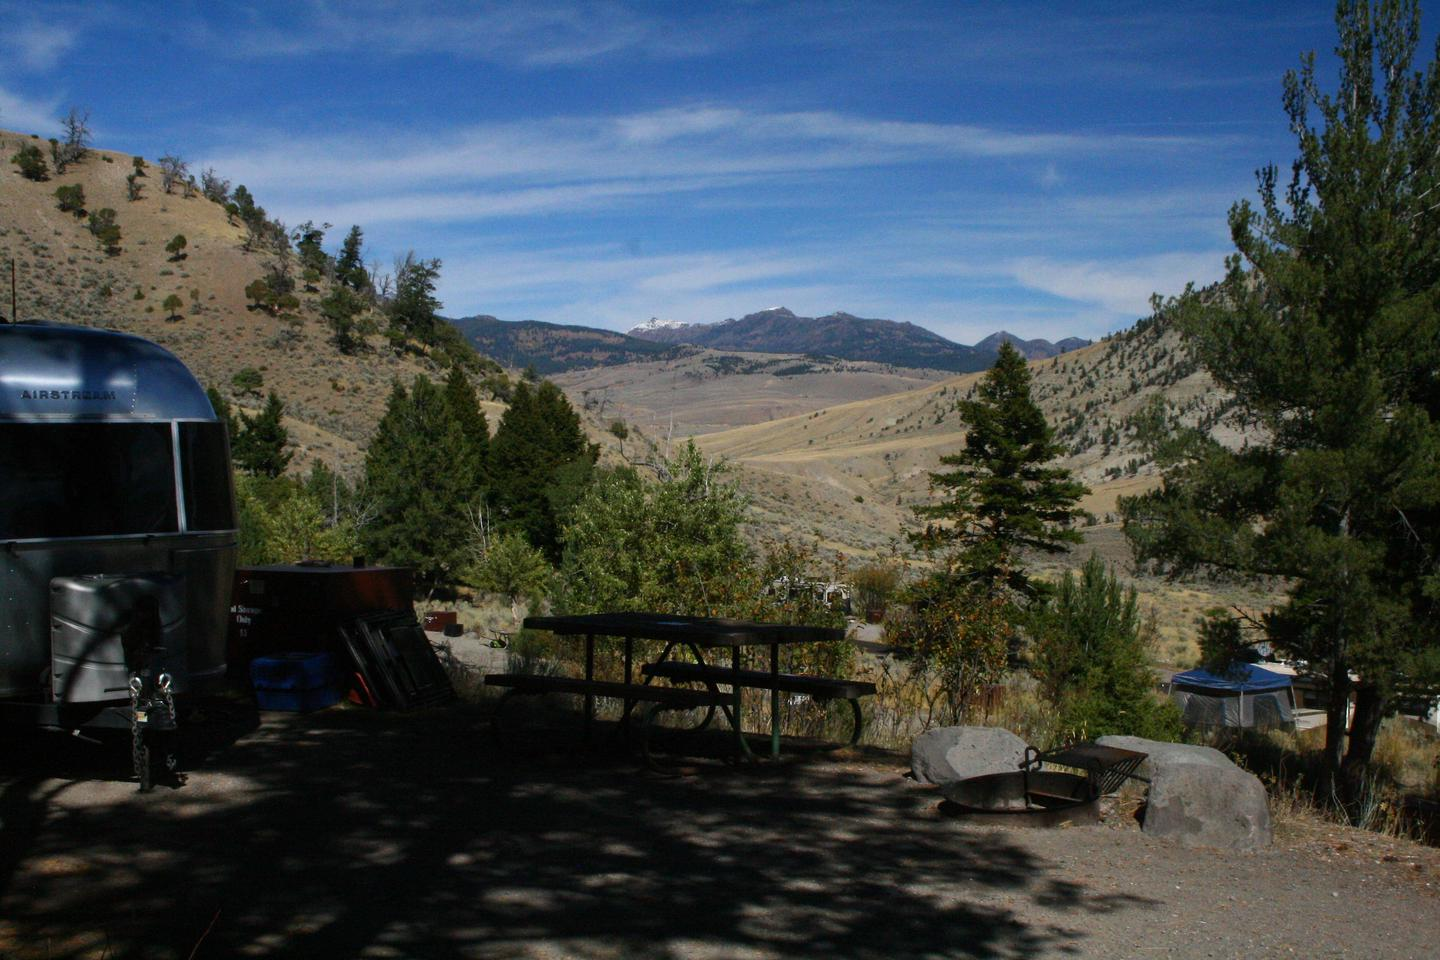 Mammoth Hot Springs Campground Site 53.Mammoth Campsite #53